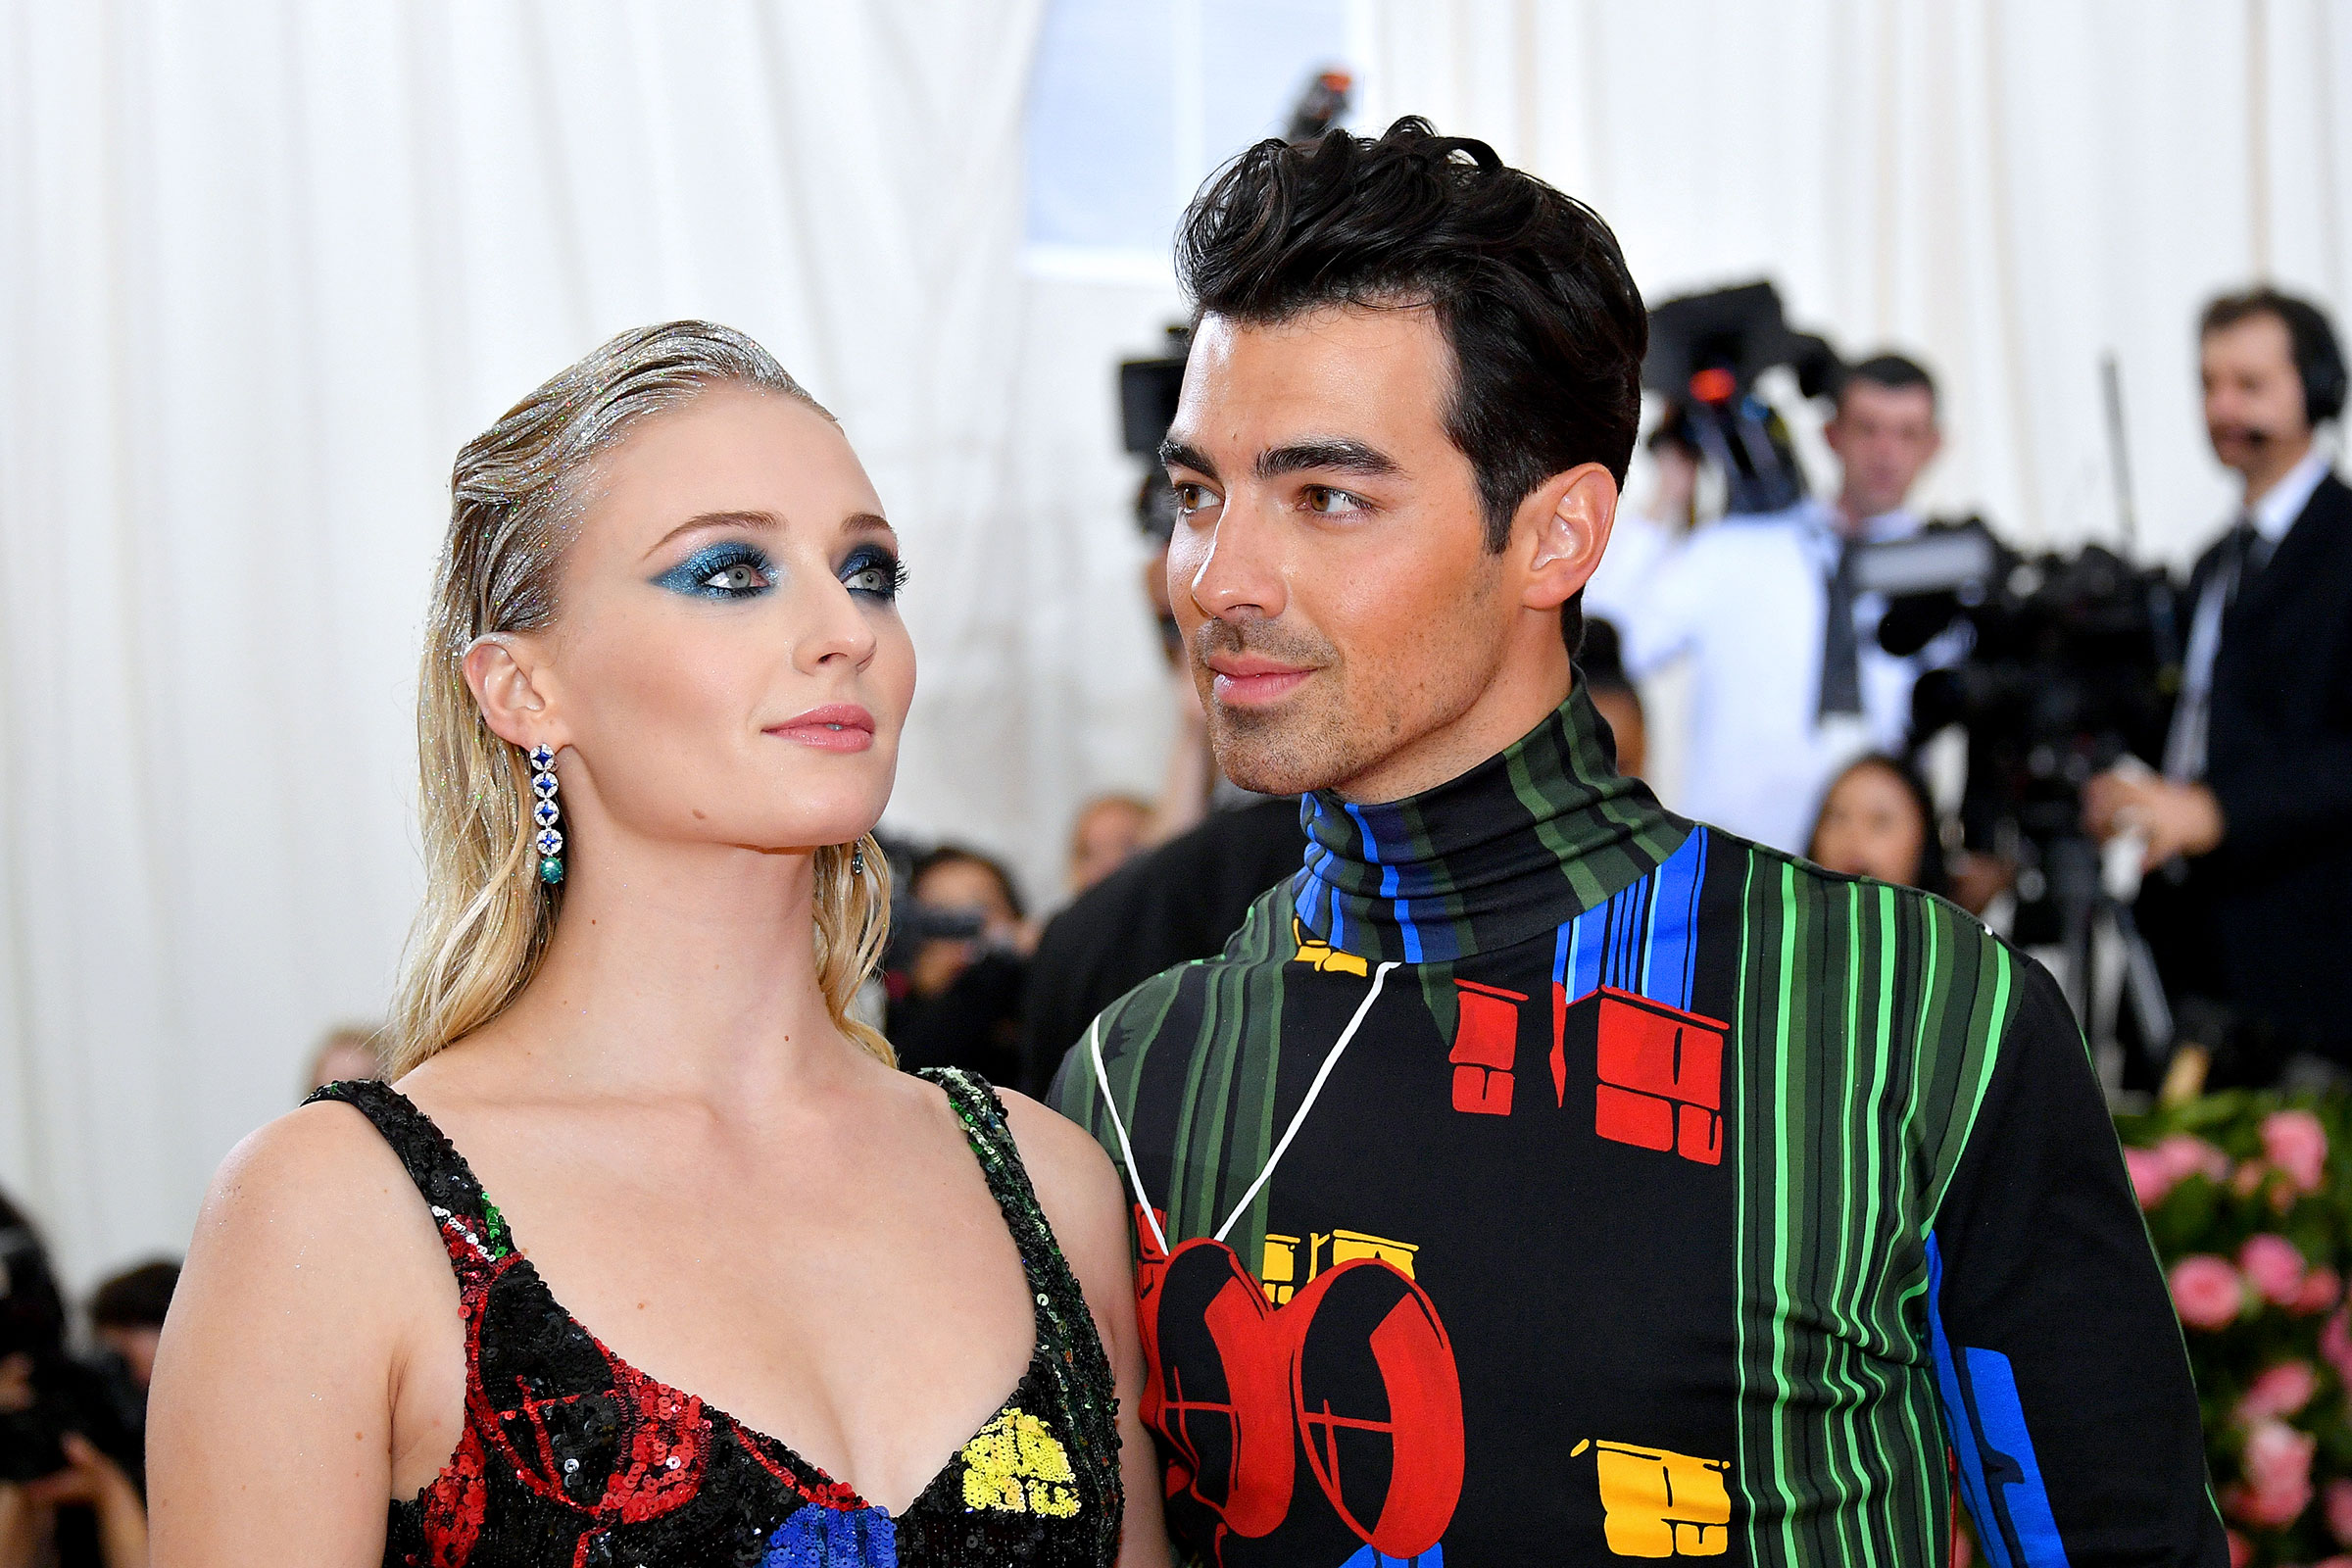 Joe Jonas and Sophie Turner attend The 2019 Met Gala Celebrating Camp: Notes on Fashion at Metropolitan Museum of Art on May 06, 2019 in New York City.